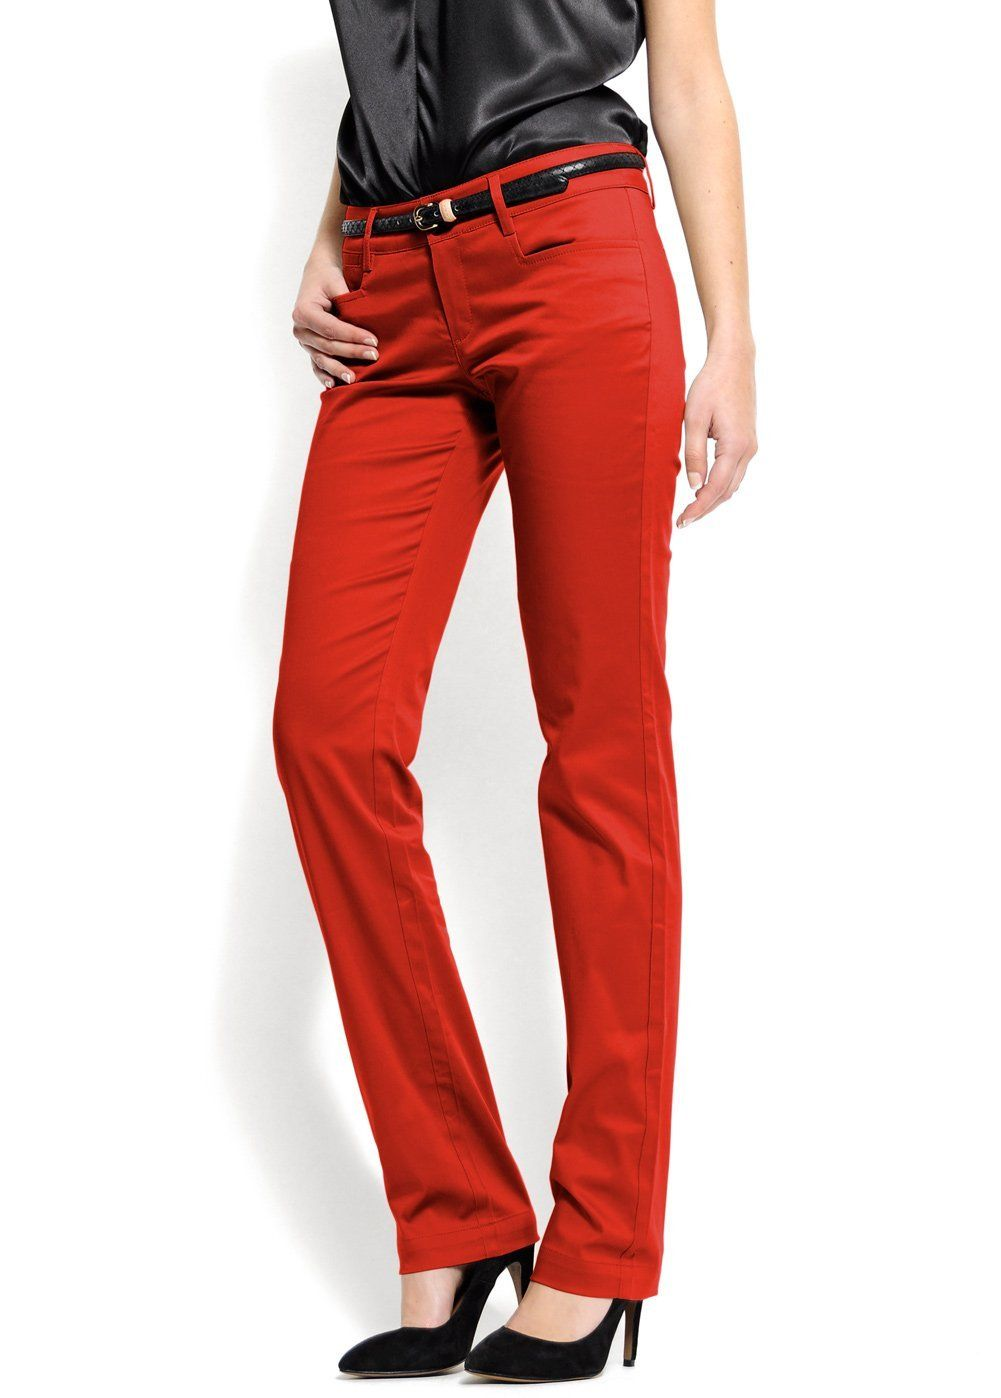 Red Dress Pants For Women - Pant Row